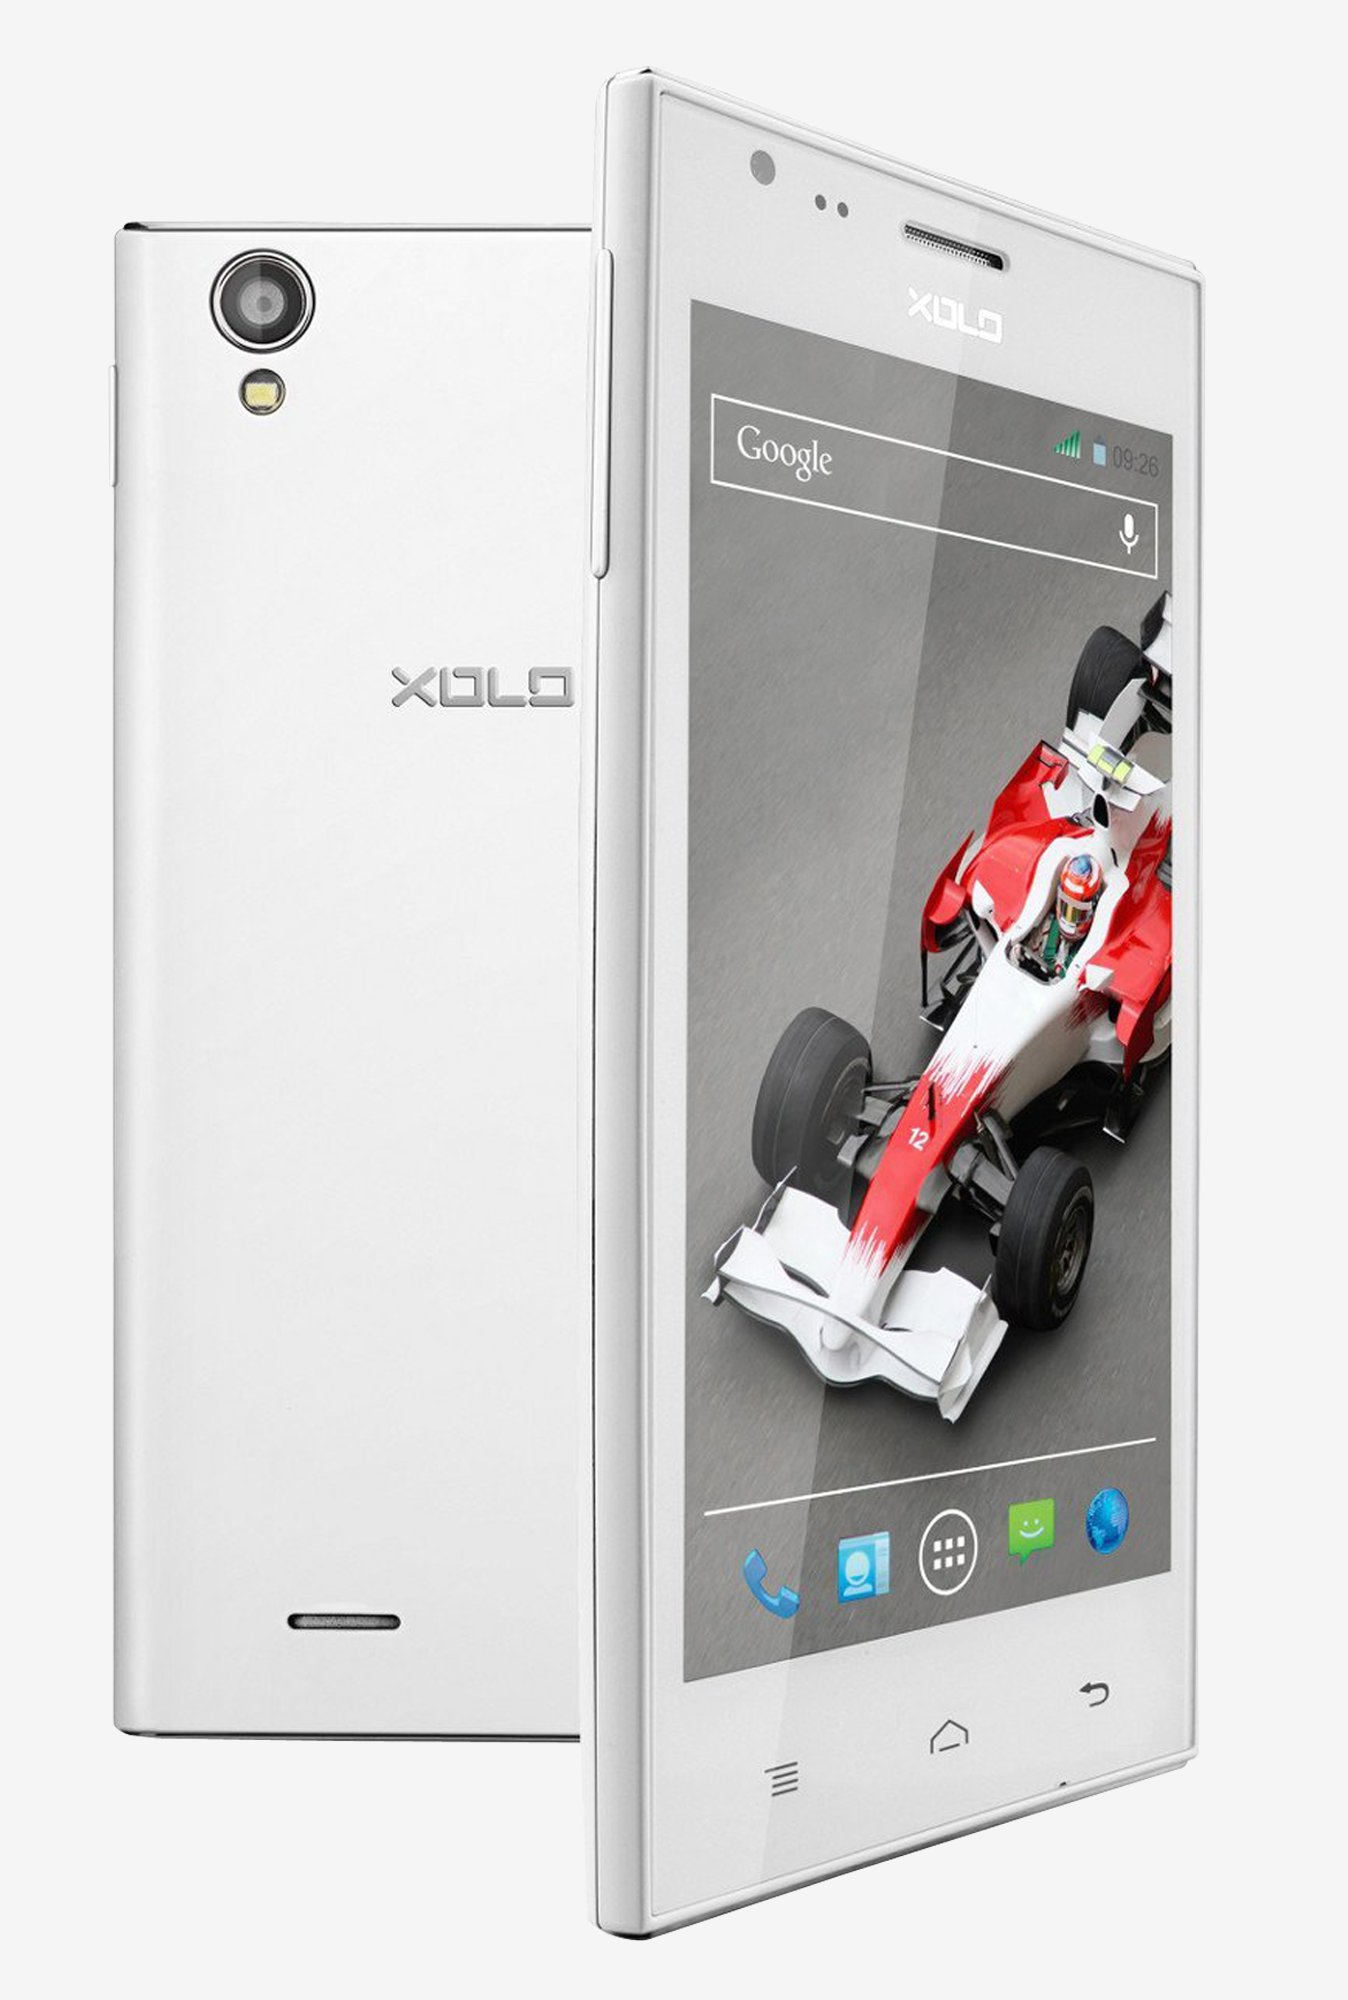 Xolo A600 Android 4.2 Jelly Bean OS (Blue)